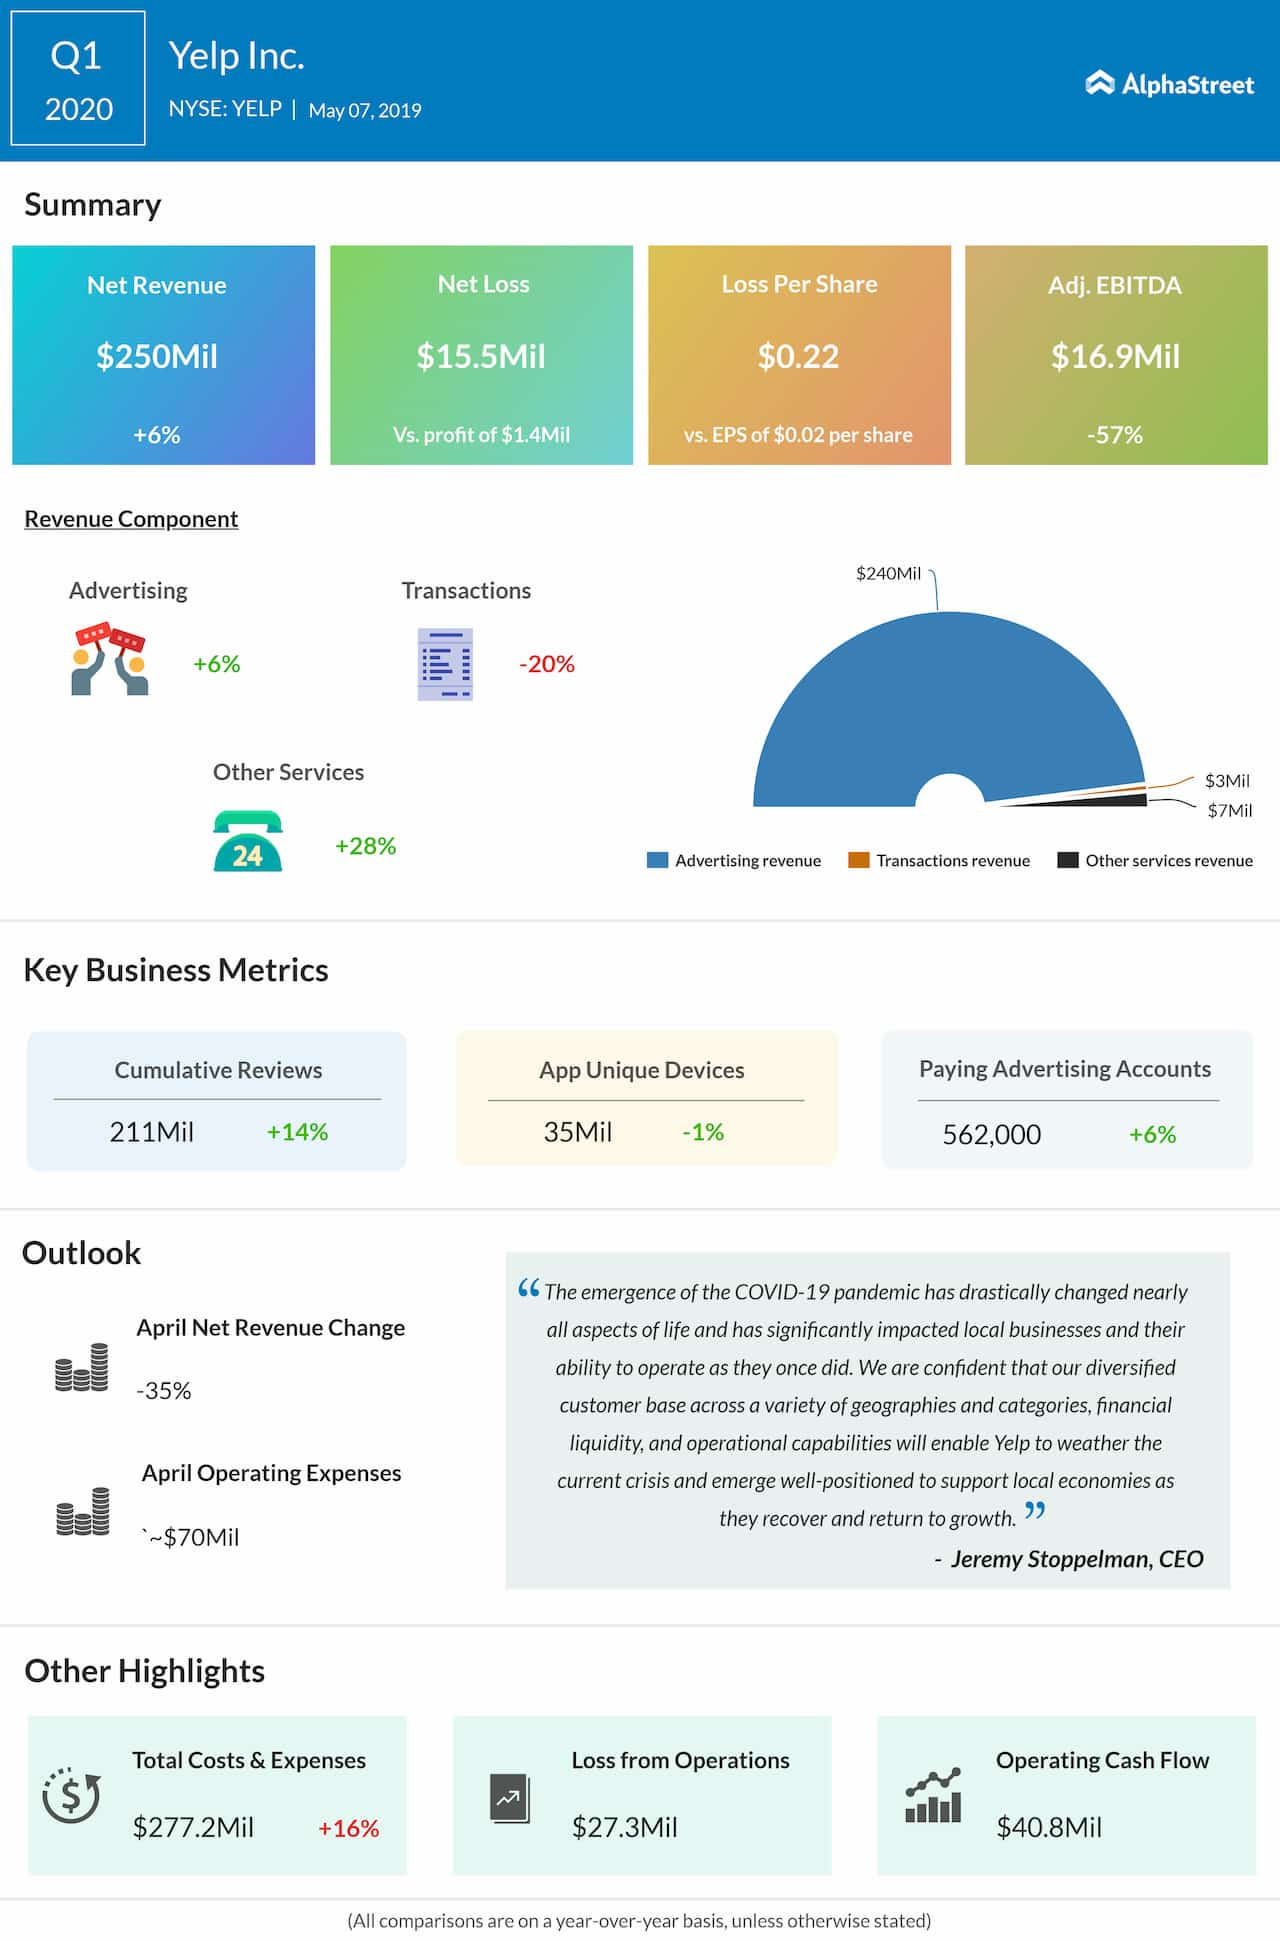 Yelp Q1 2020 Earnings Infographic